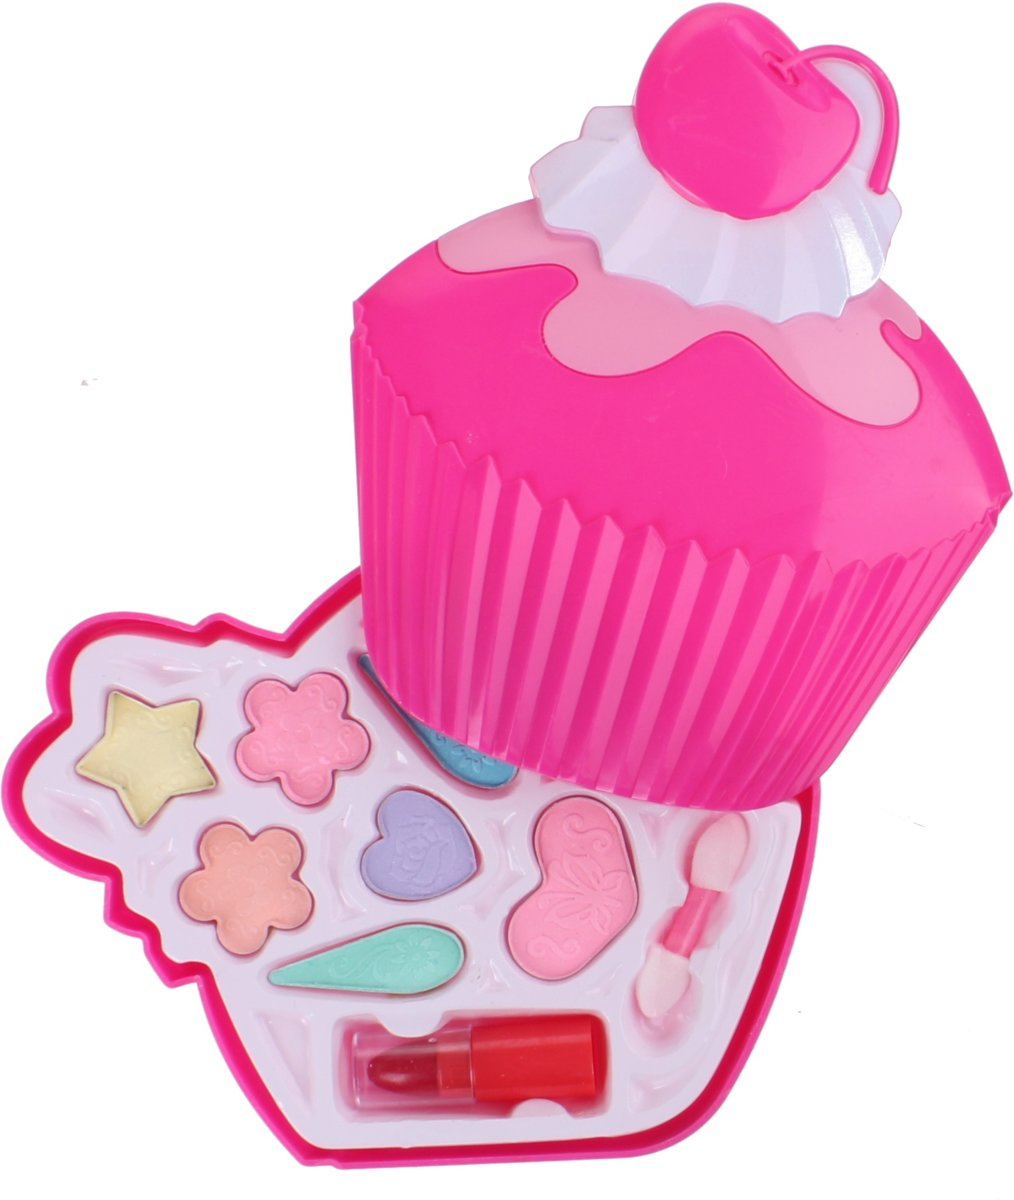 Free And Easy Make-upset Cupcake 12 Cm Roze